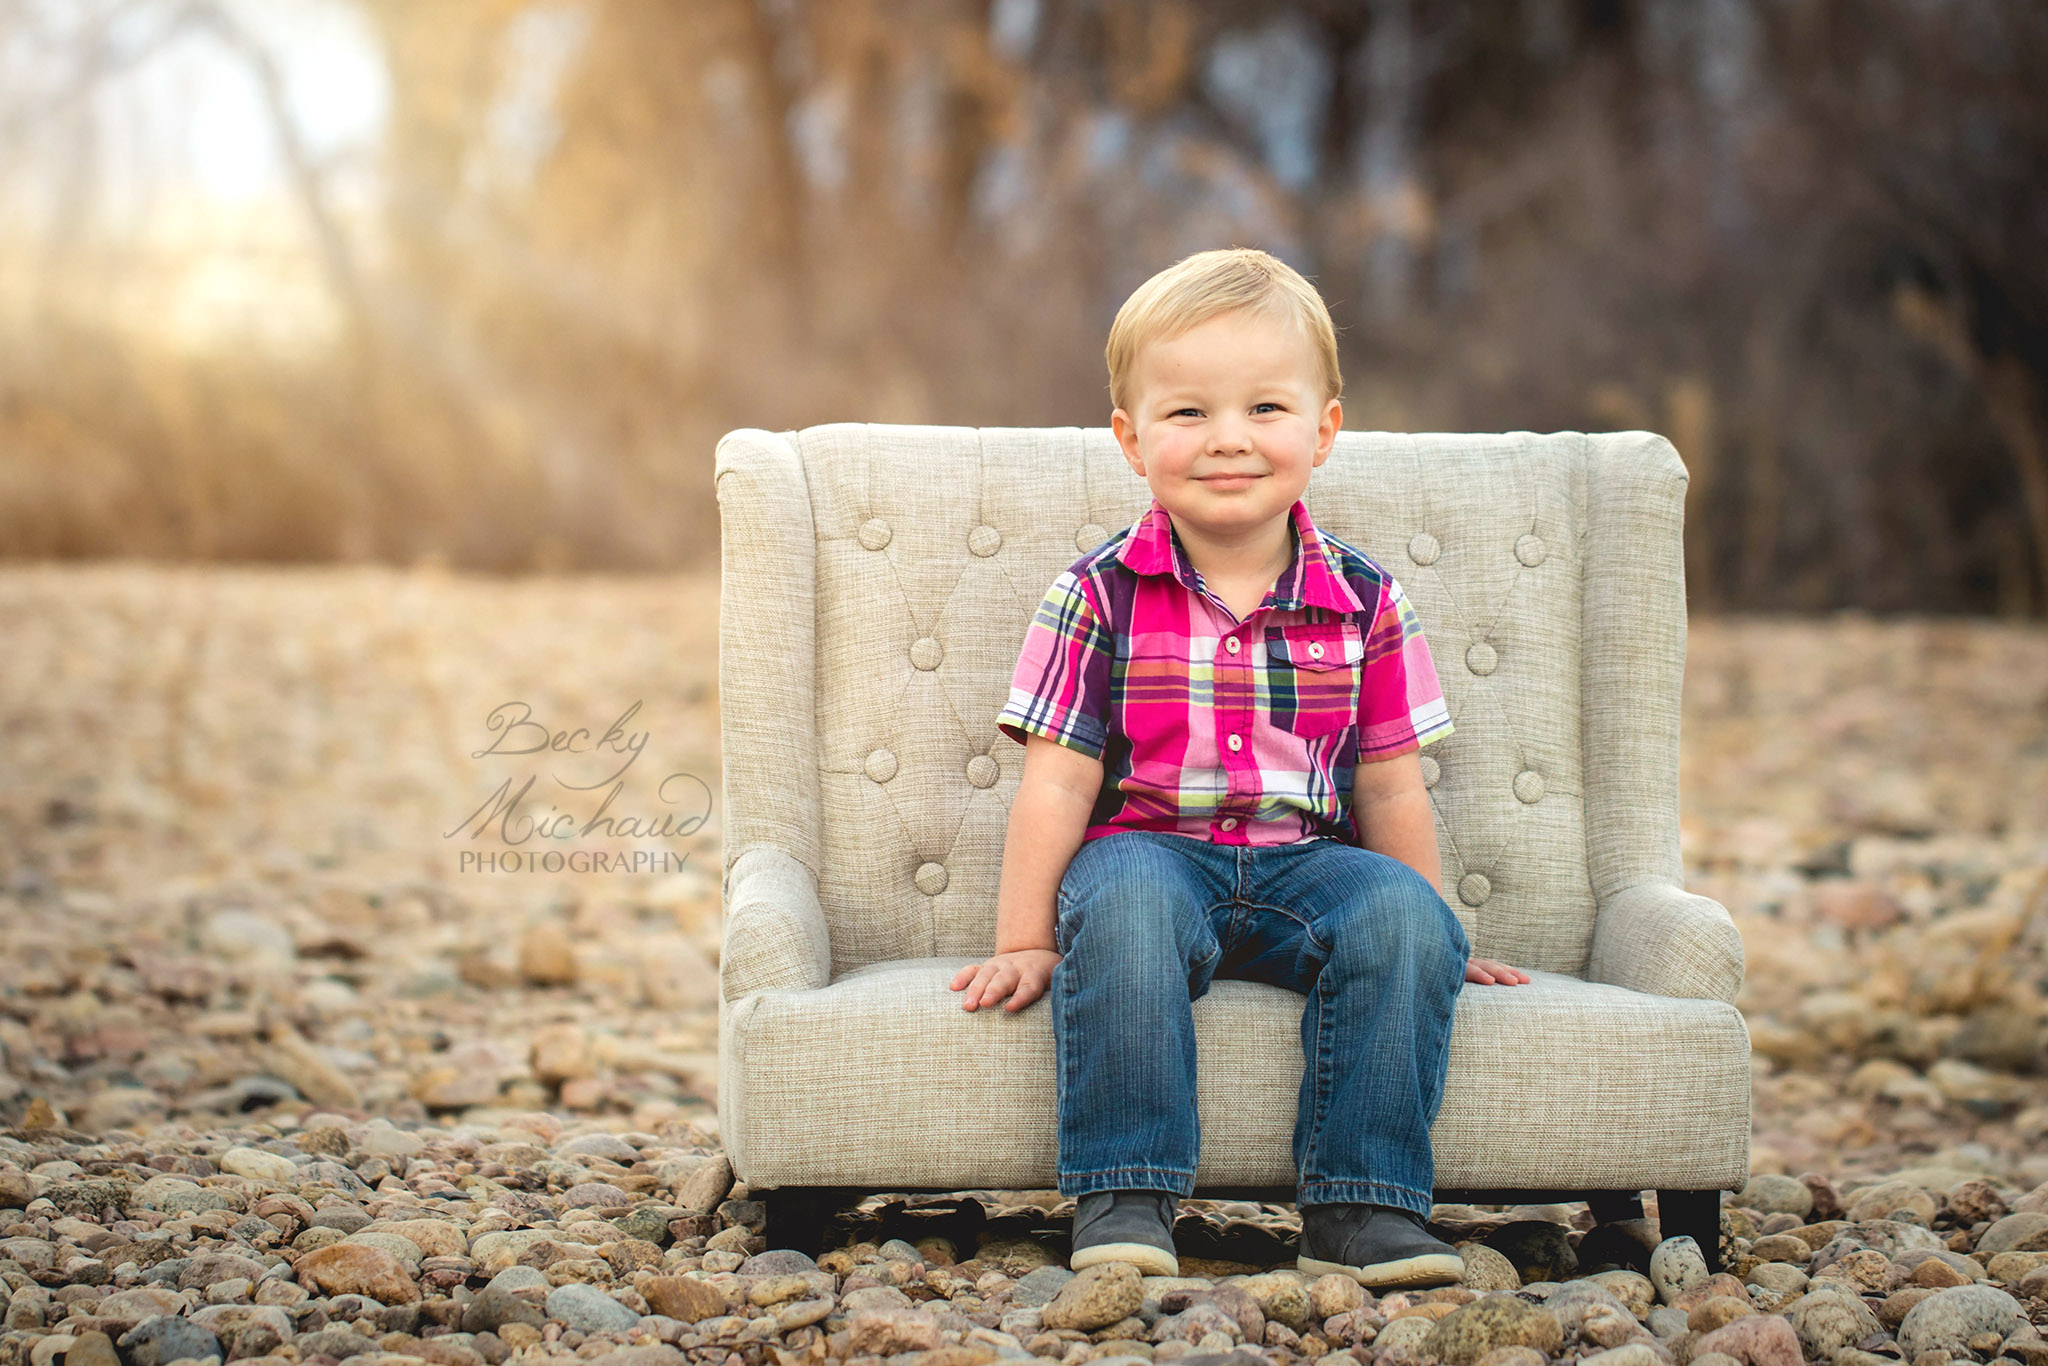 A toddler sits on a small white couch in a field of river rock